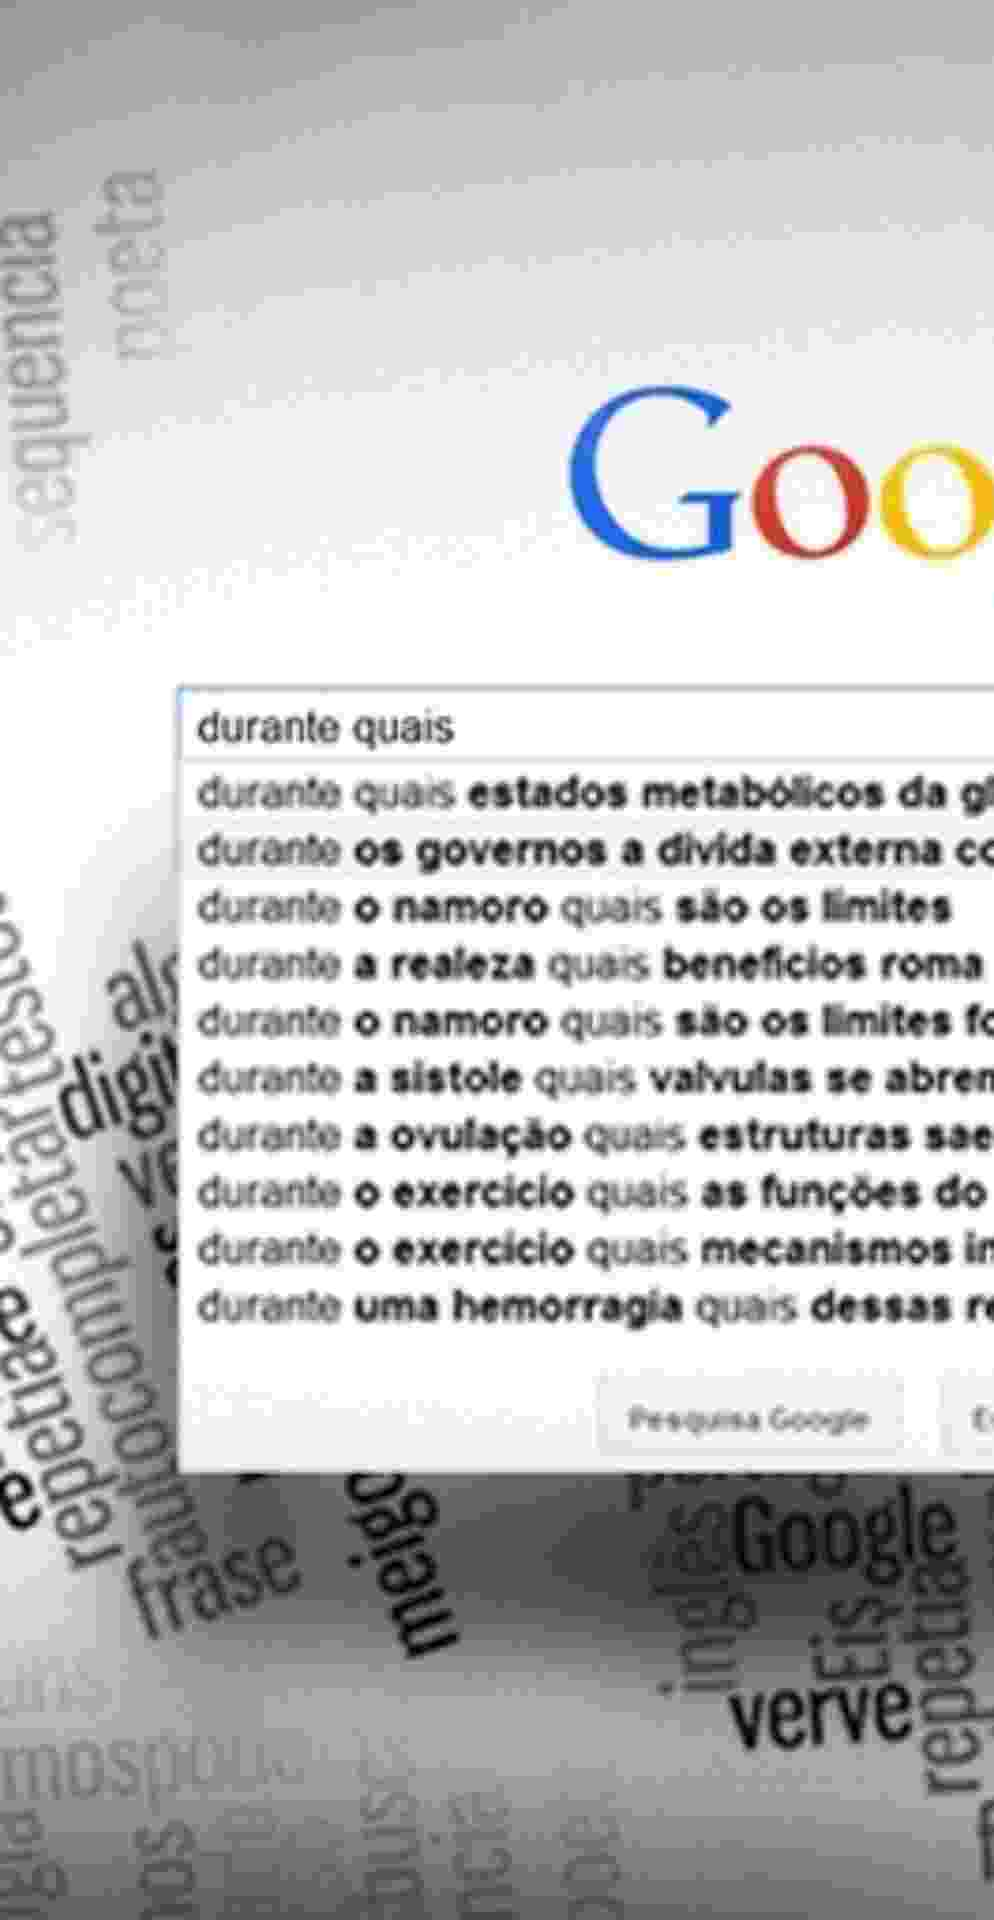 Fotos Google Prolixo Autocompletar Do Buscador Revela Frases